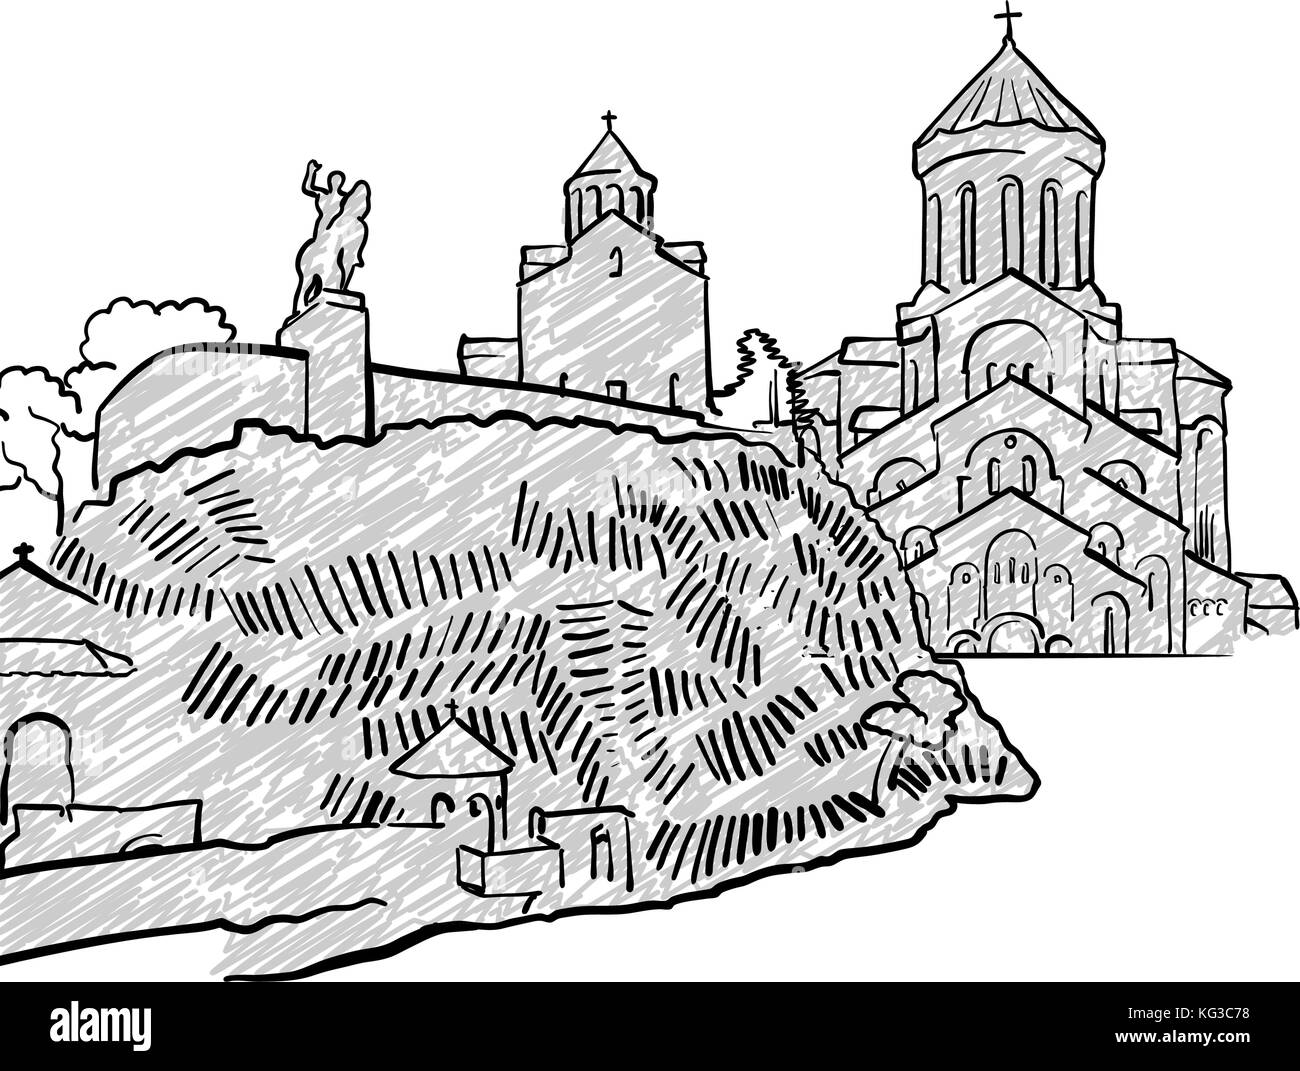 Tbilisi, Georgia famous Travel Sketch. Lineart drawing by hand. Greeting card design, vector illustration - Stock Vector